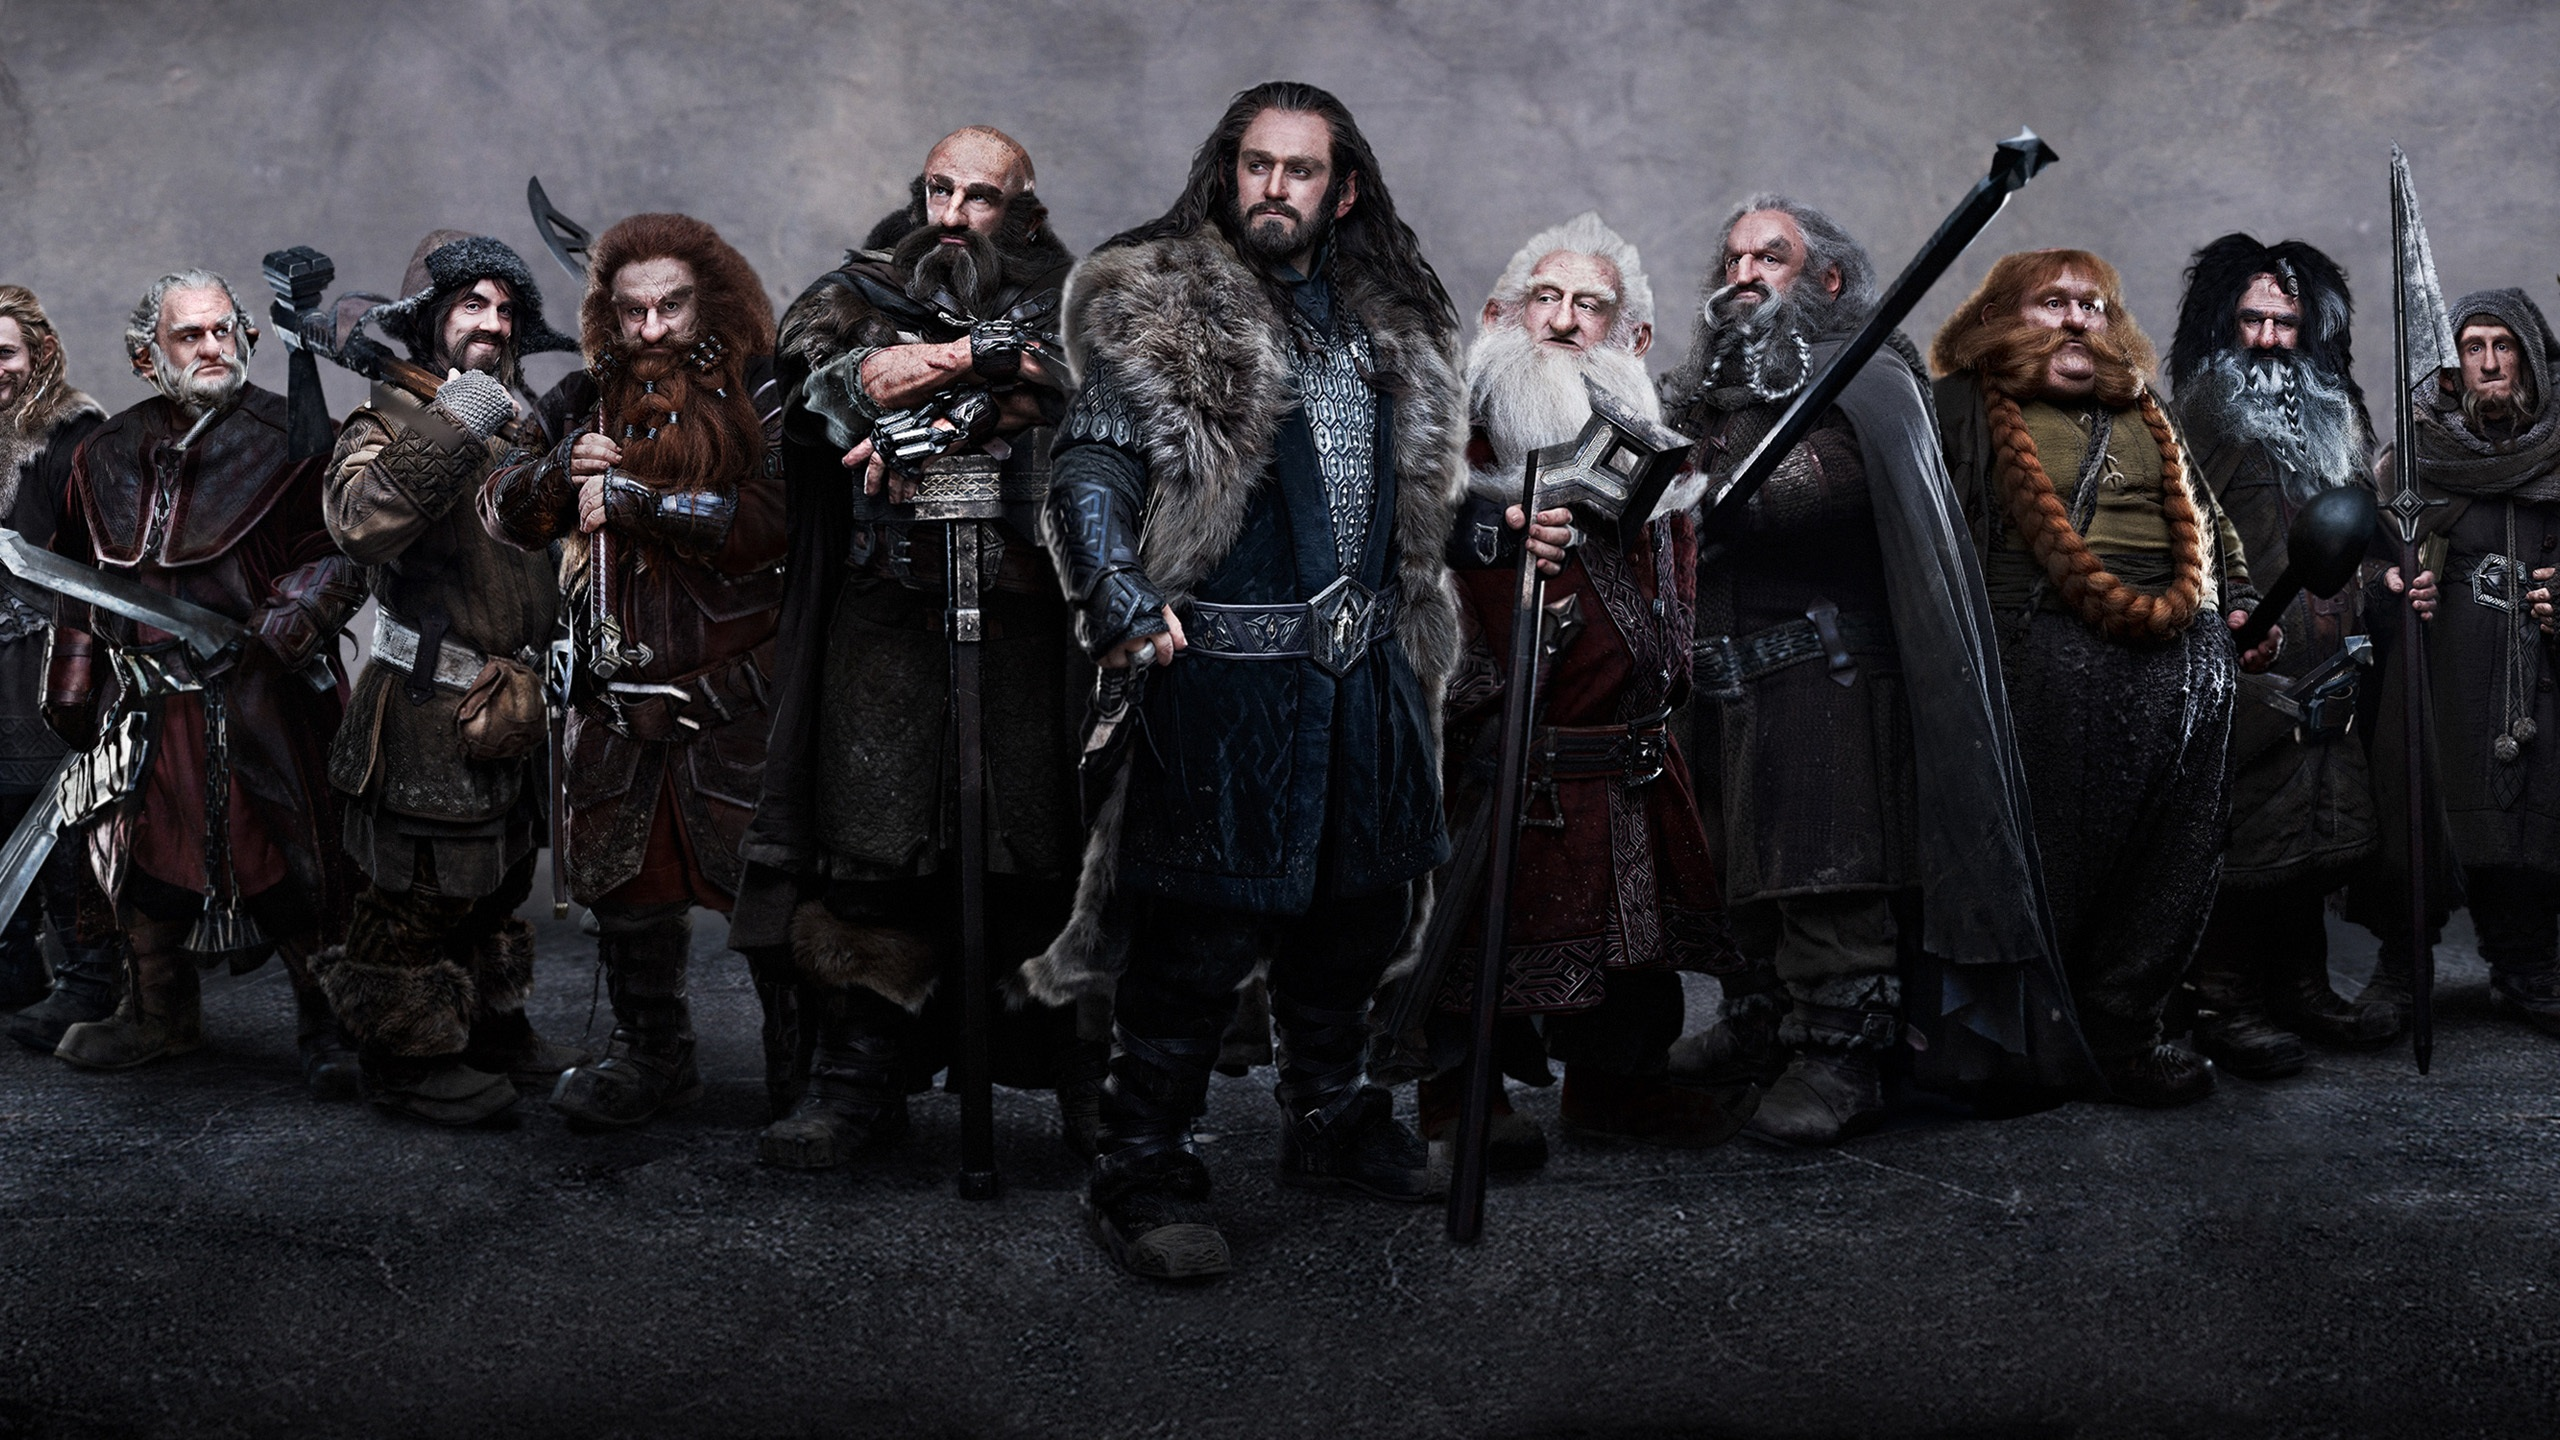 the hobbit movie Awesome Wallpapers 2560x1440